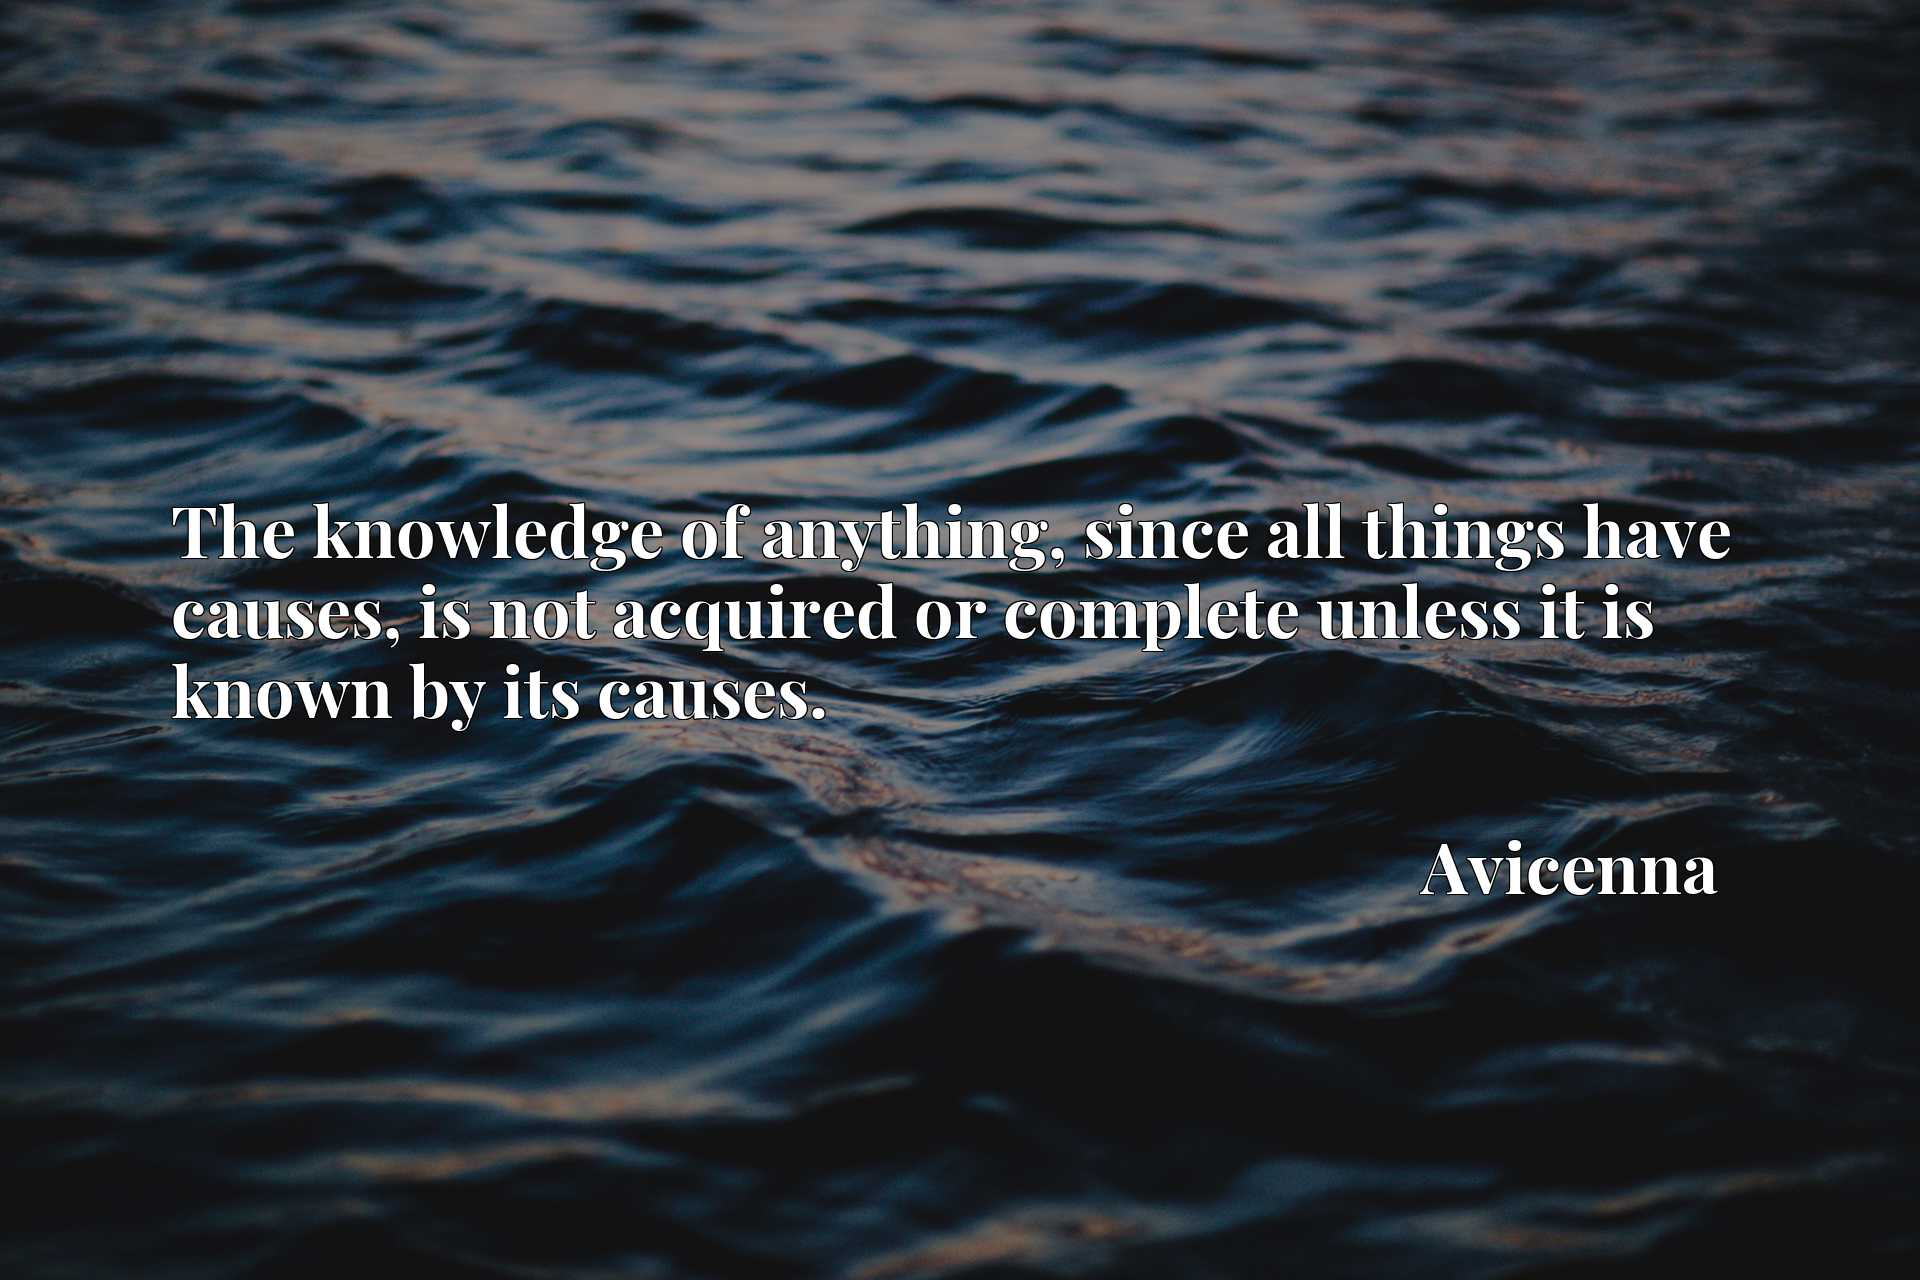 The knowledge of anything, since all things have causes, is not acquired or complete unless it is known by its causes.